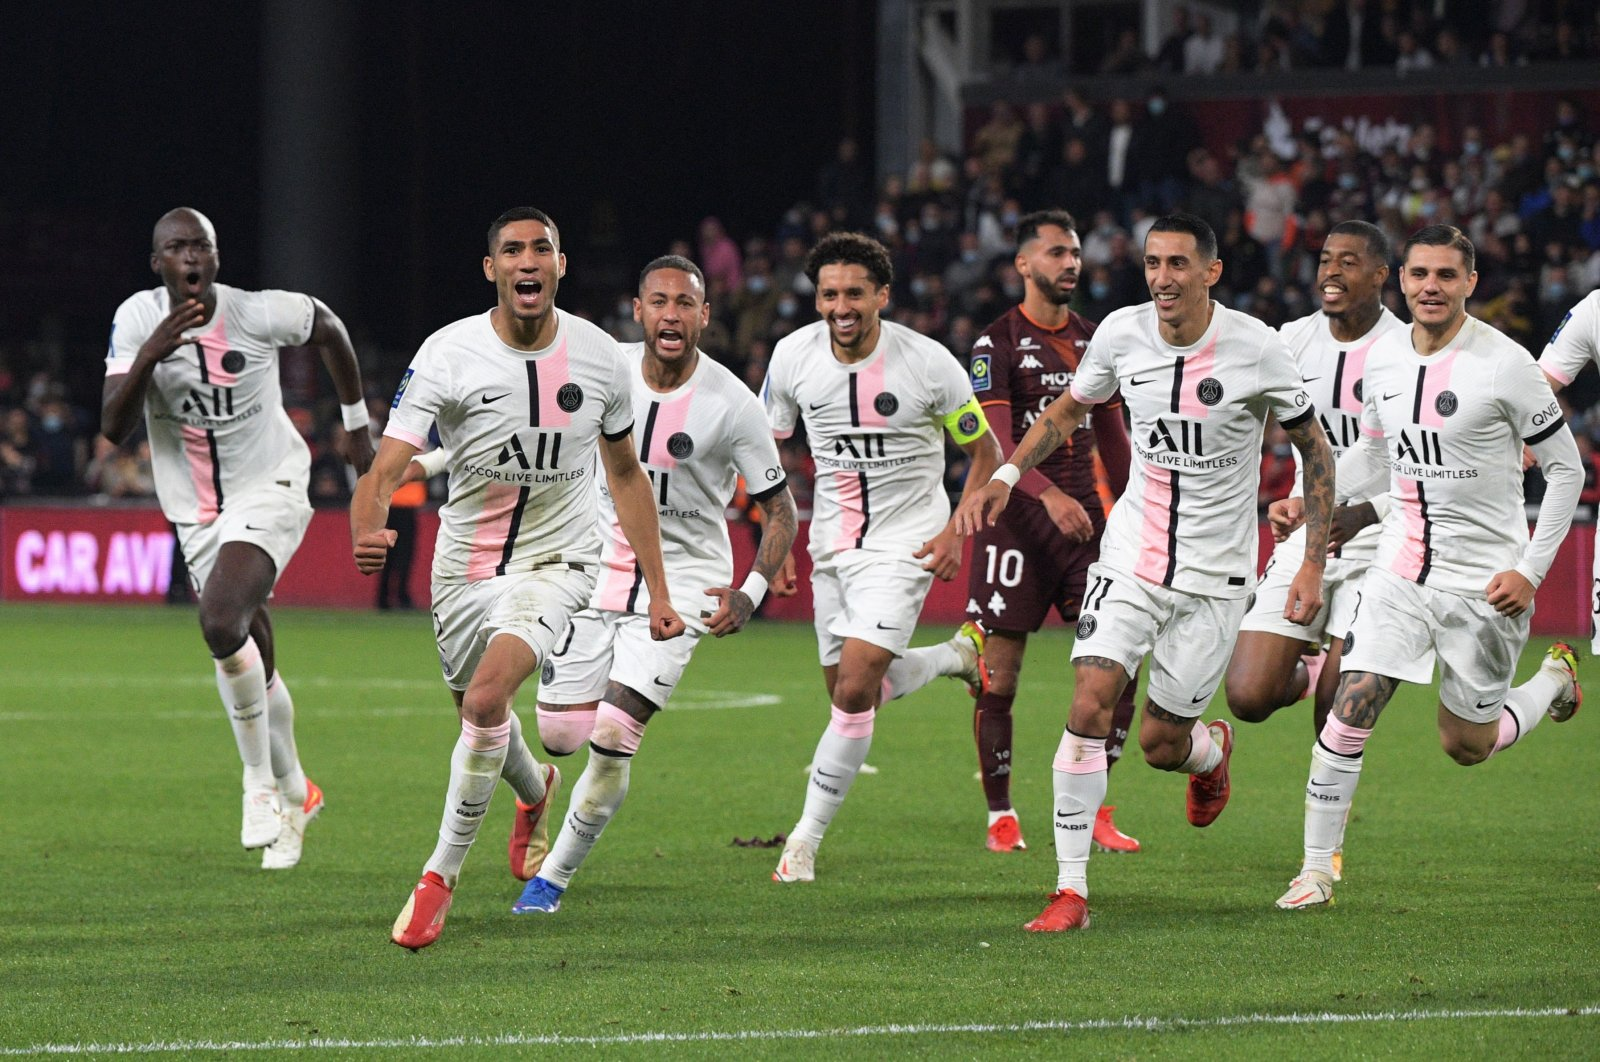 Paris Saint-Germain's Moroccan defender Achraf Hakimi (2nd L) celebrates with teammates after scoring his team's second goal during a Ligue 1 match between FC Metz in Longeville-les-Metz, eastern France, Sept. 22, 2021. (AFP Photo)